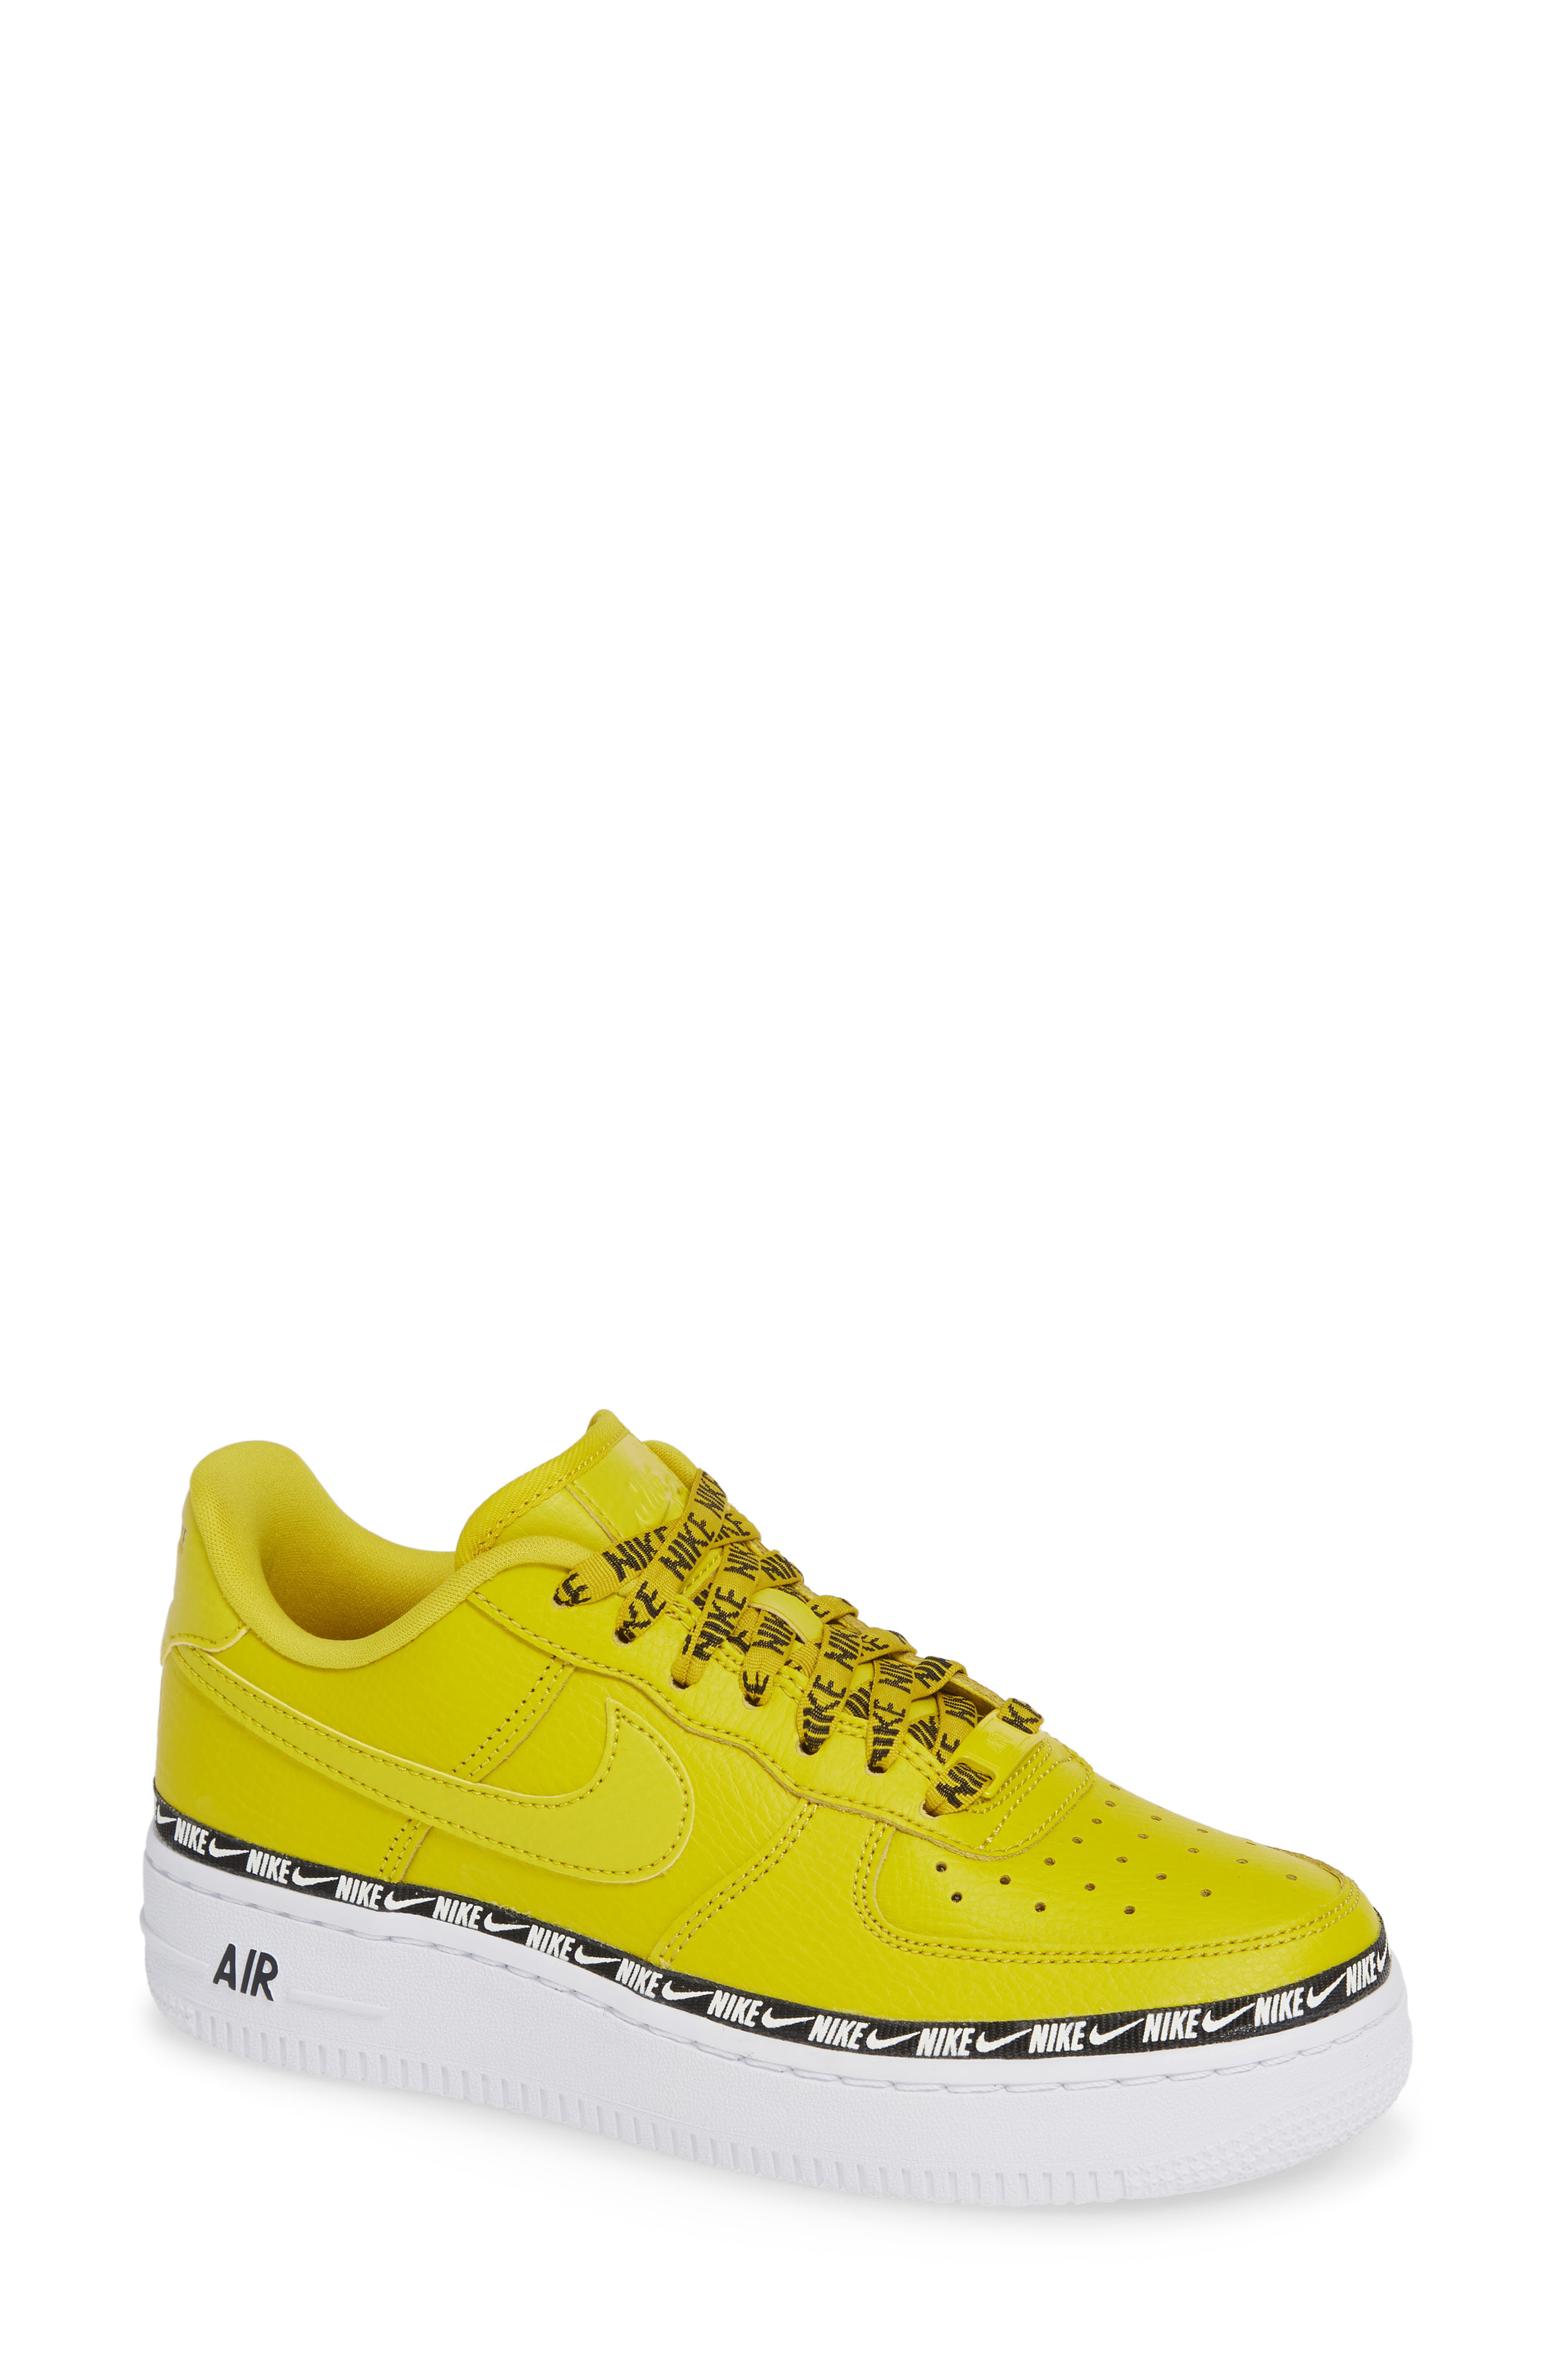 Shop Nike Air Force 1 '07 Se Premium Sneaker In Bright